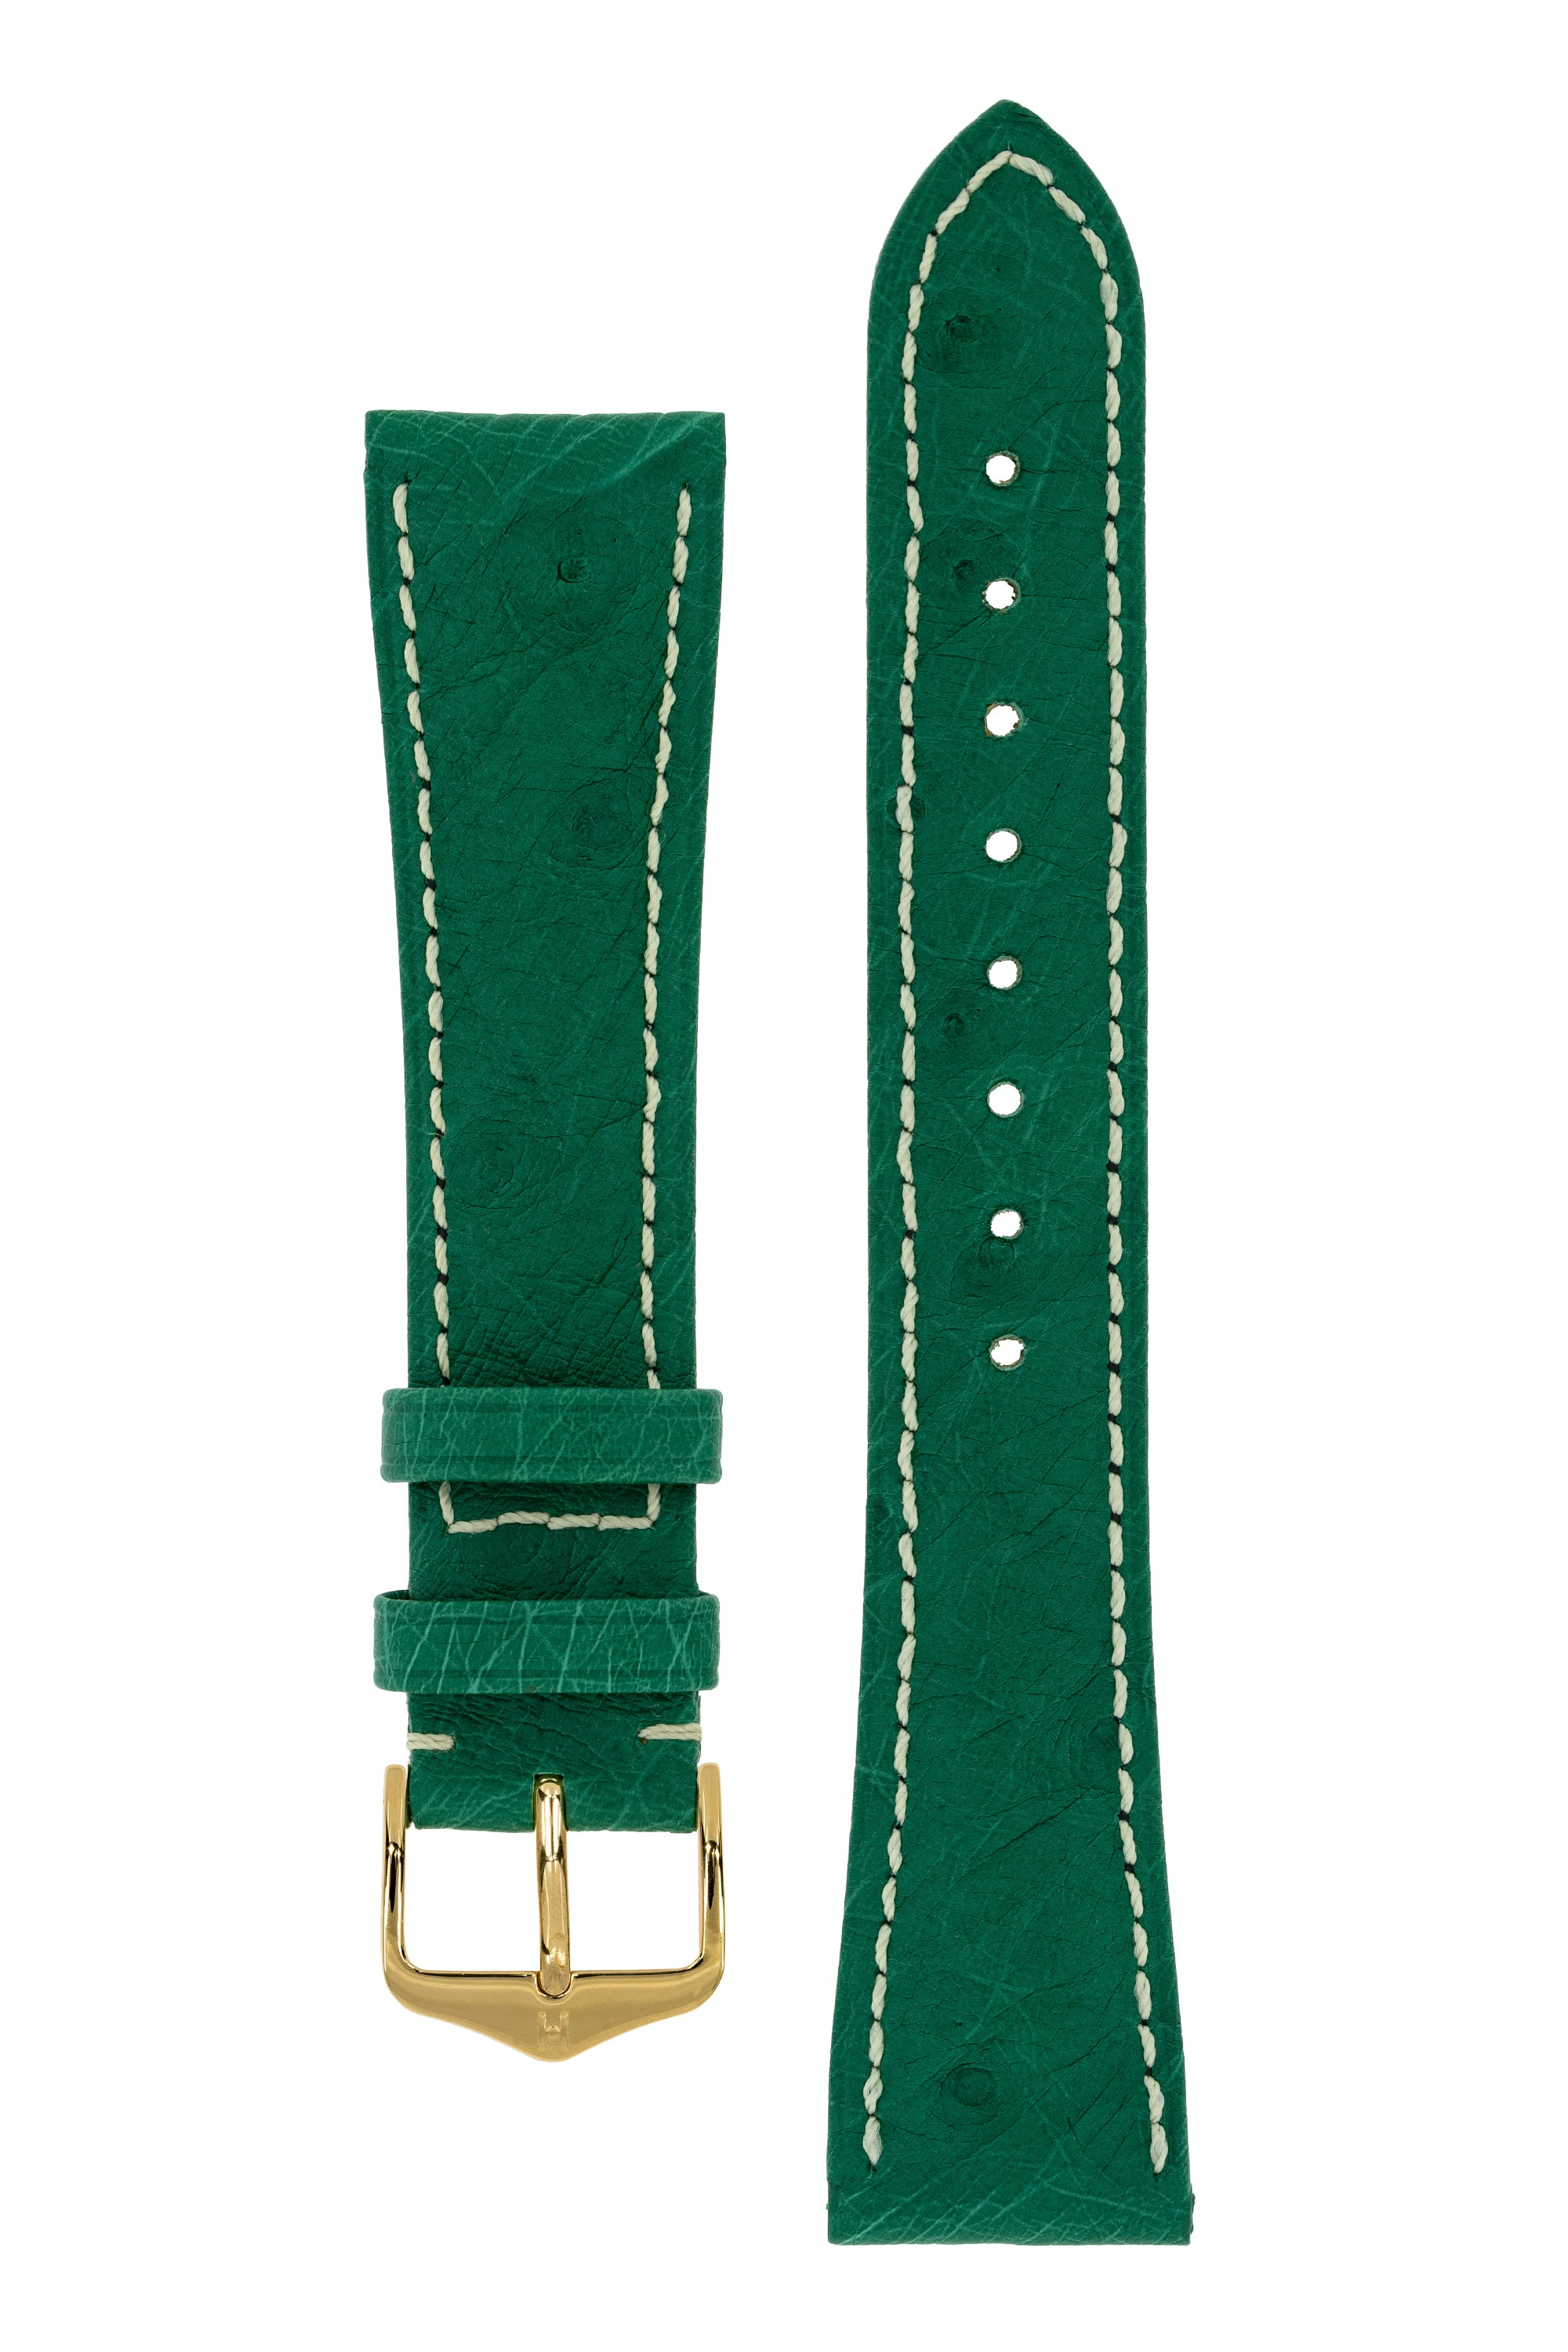 Hirsch MASSAI OSTRICH Leather Watch Strap in GREEN With WHITE Stitching